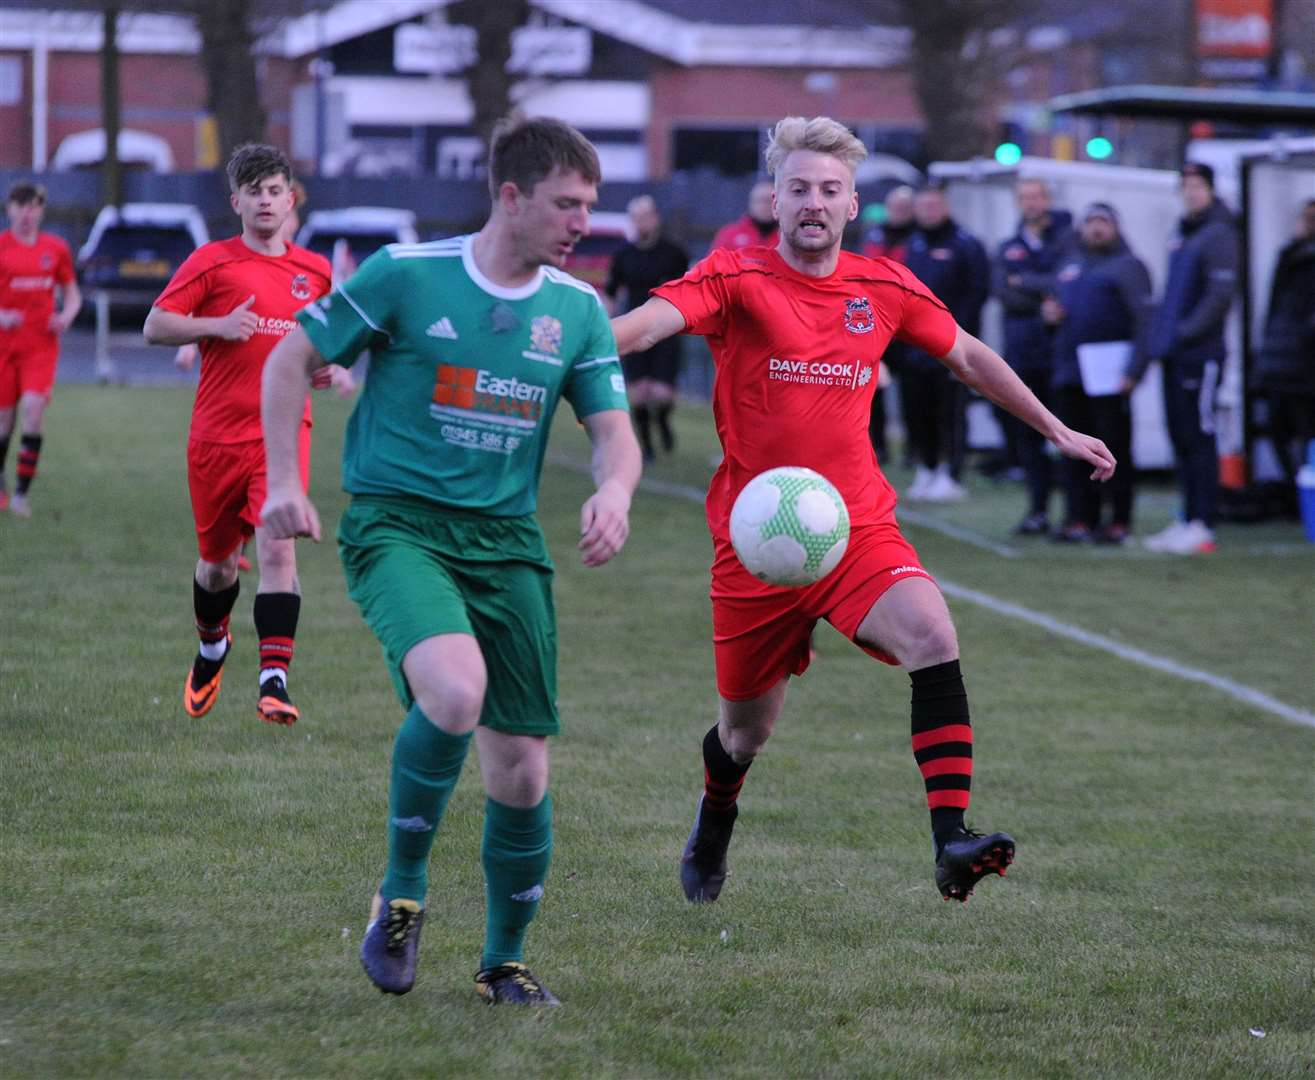 Match action from Pinchbeck's friendly with Wisbech. Photo: Chris Lowndes (46161277)